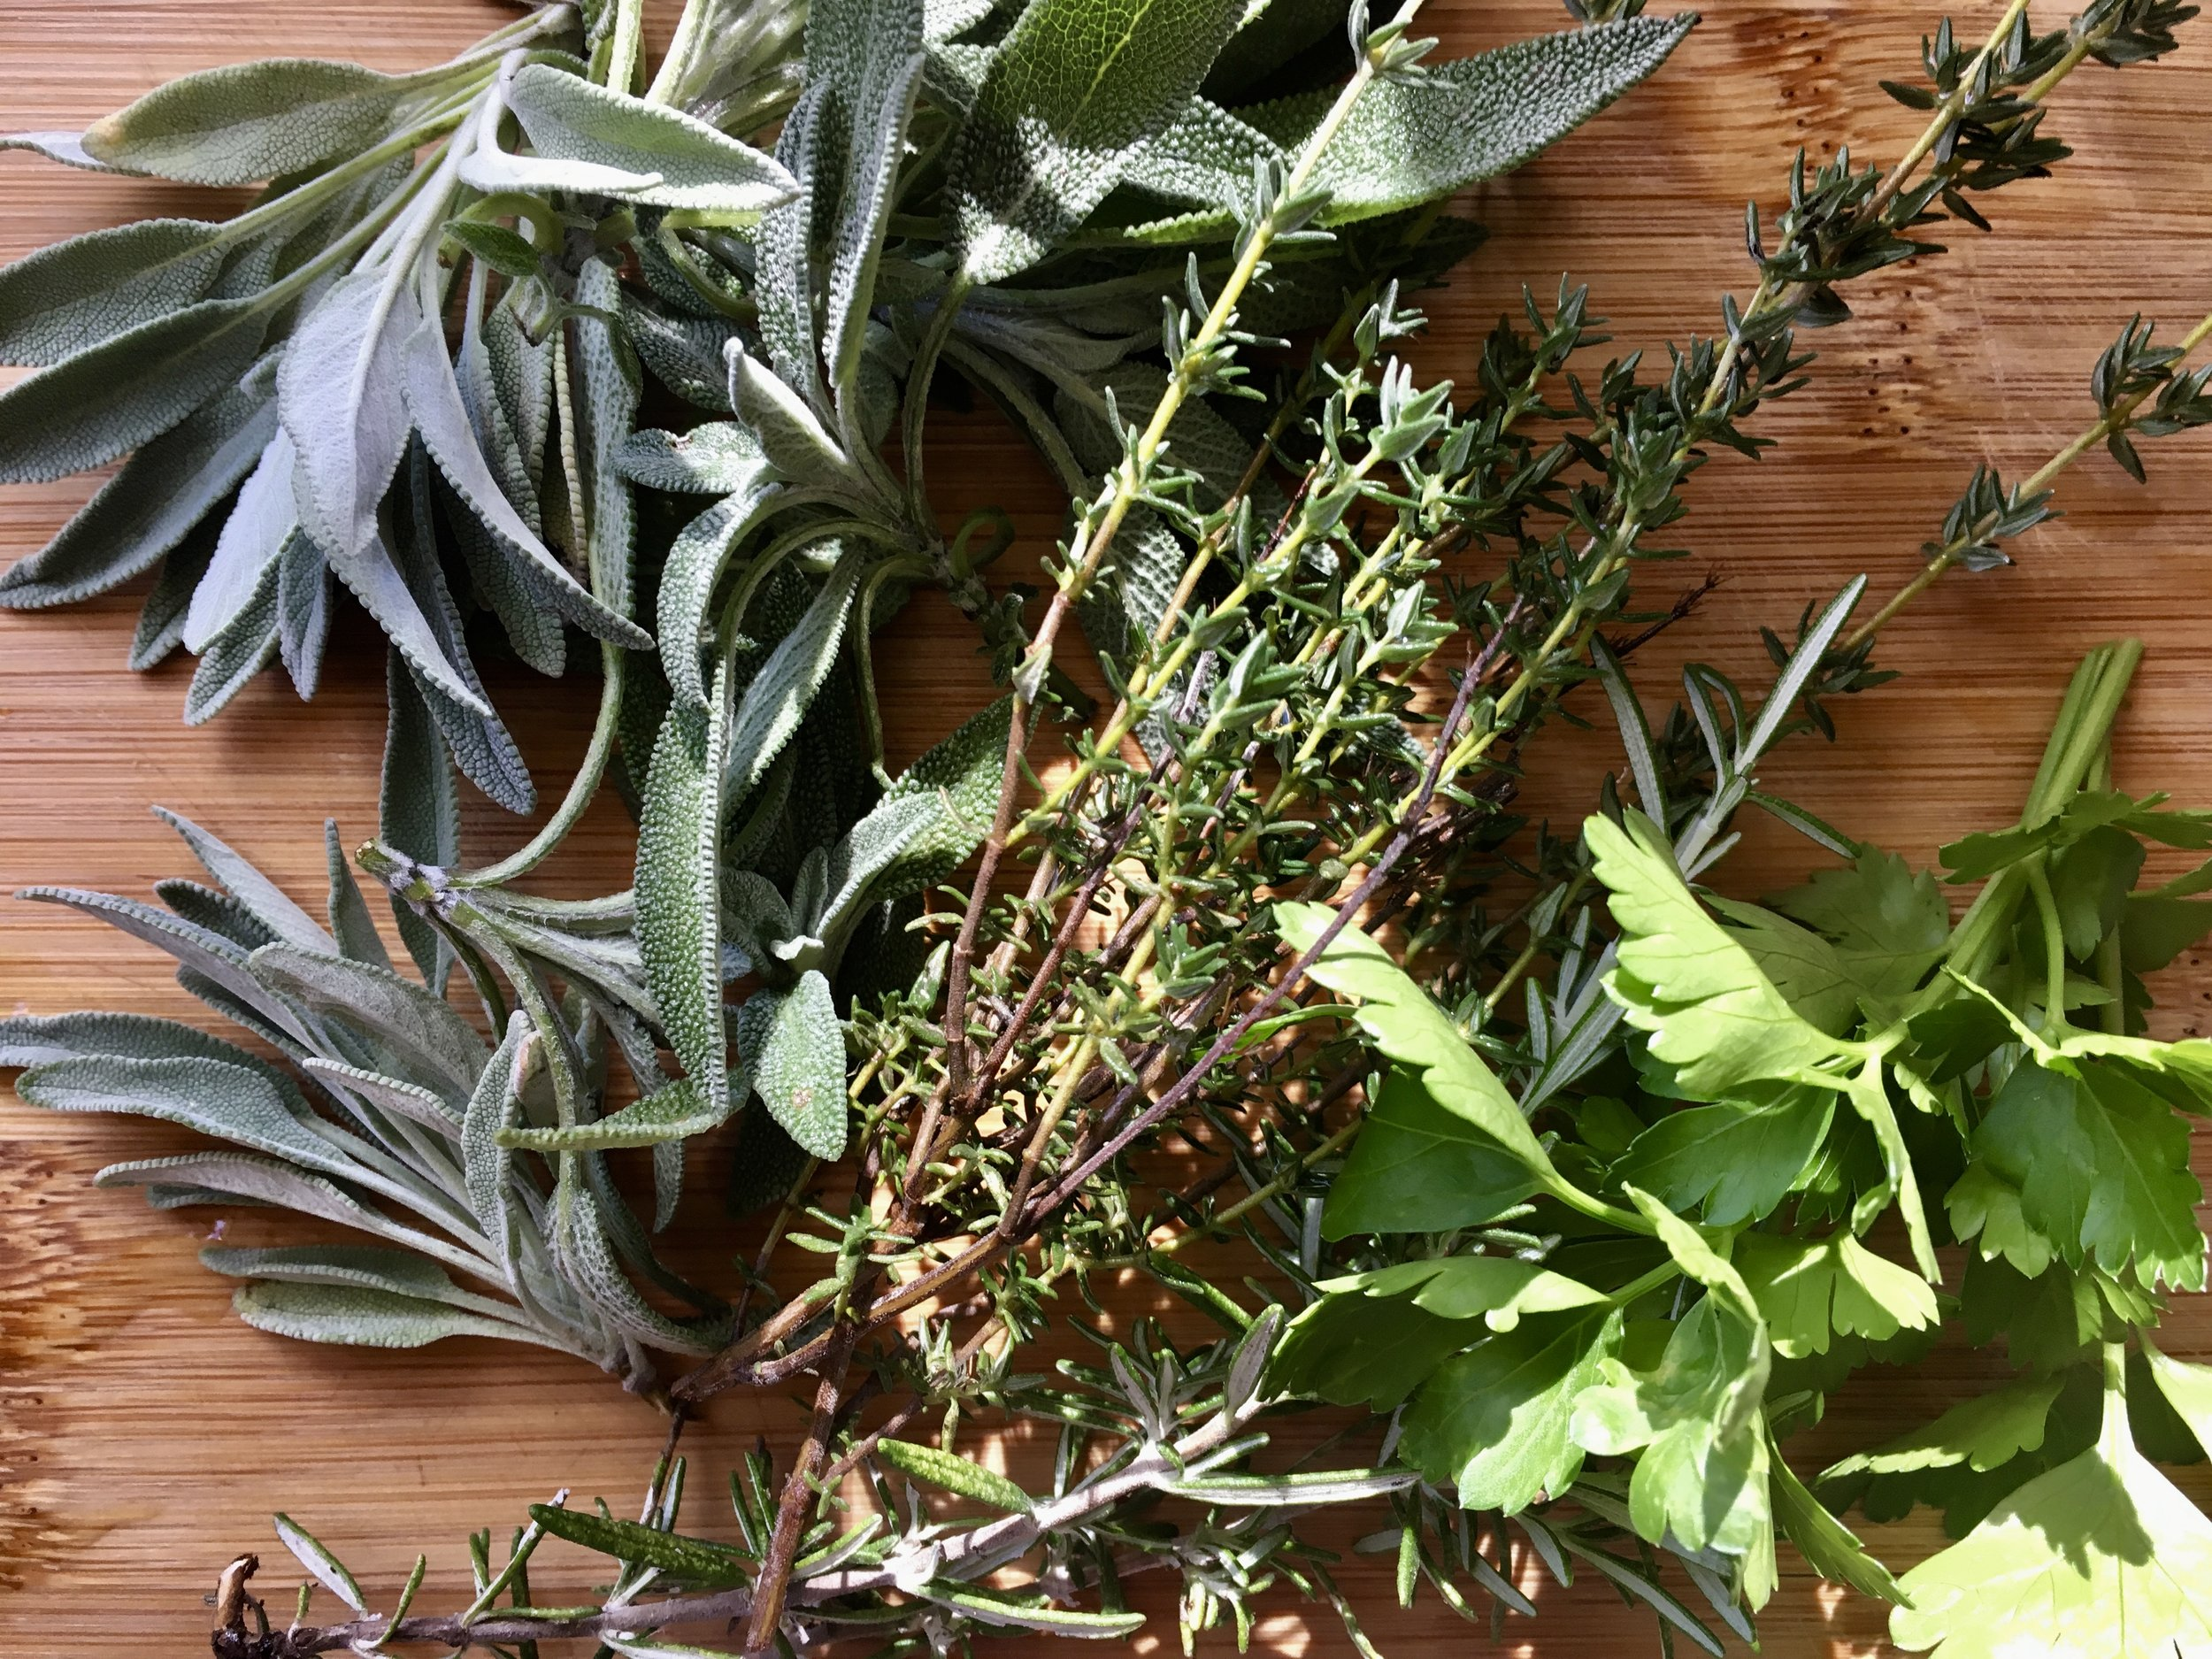 Sage, thyme, rosemary and parsley from the garden